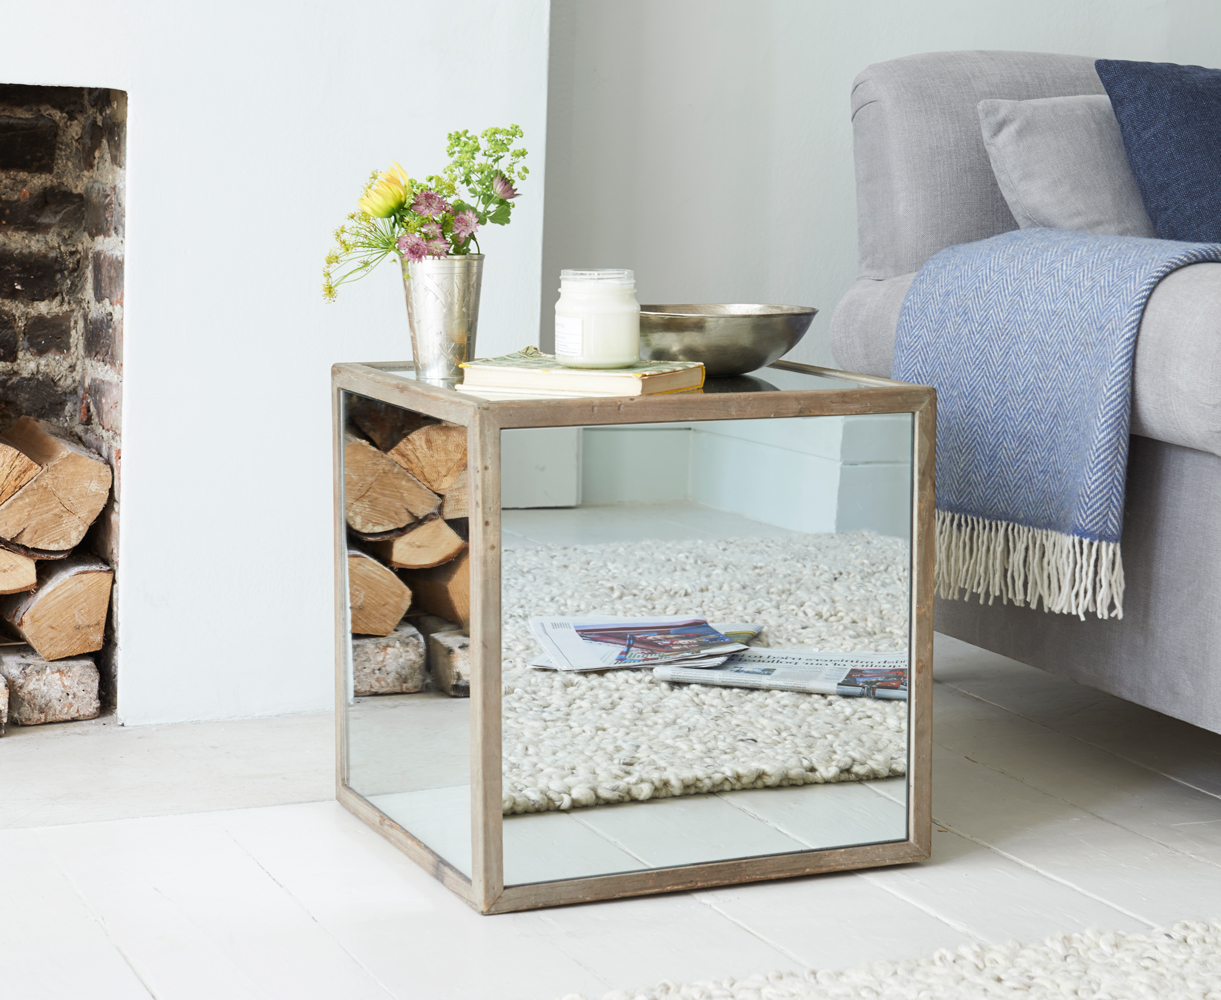 mirrored accent table square gretabean replica furniture silver tray marble and wood side gray nautical bathroom ideas timber brisbane round cherry resin patio with umbrella hole